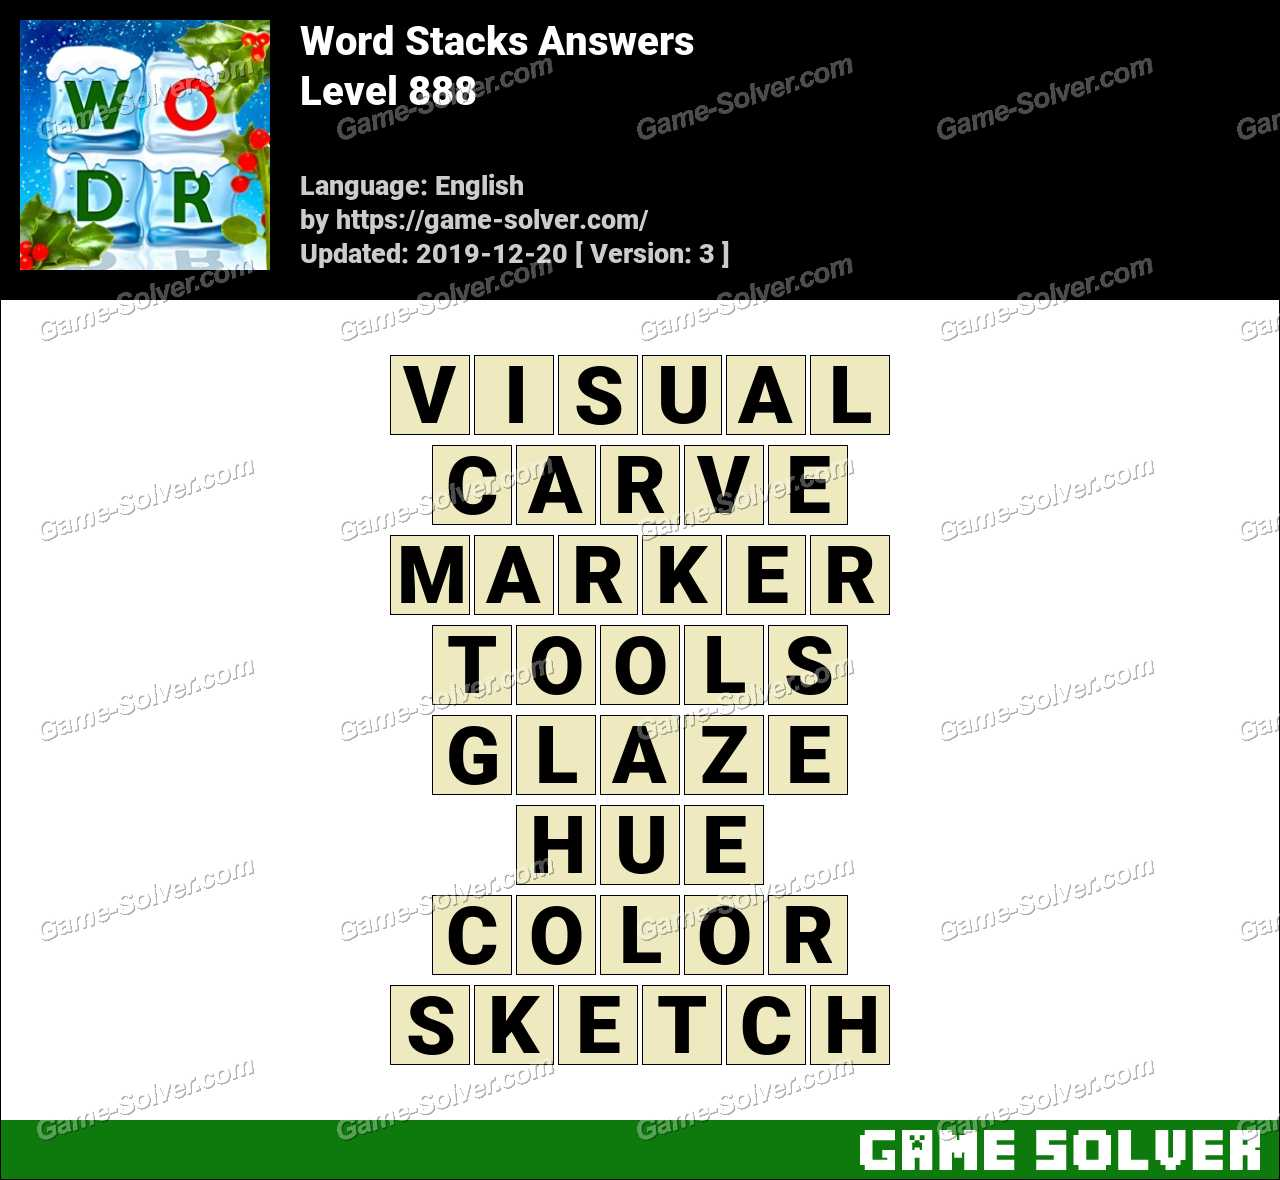 Word Stacks Level 888 Answers